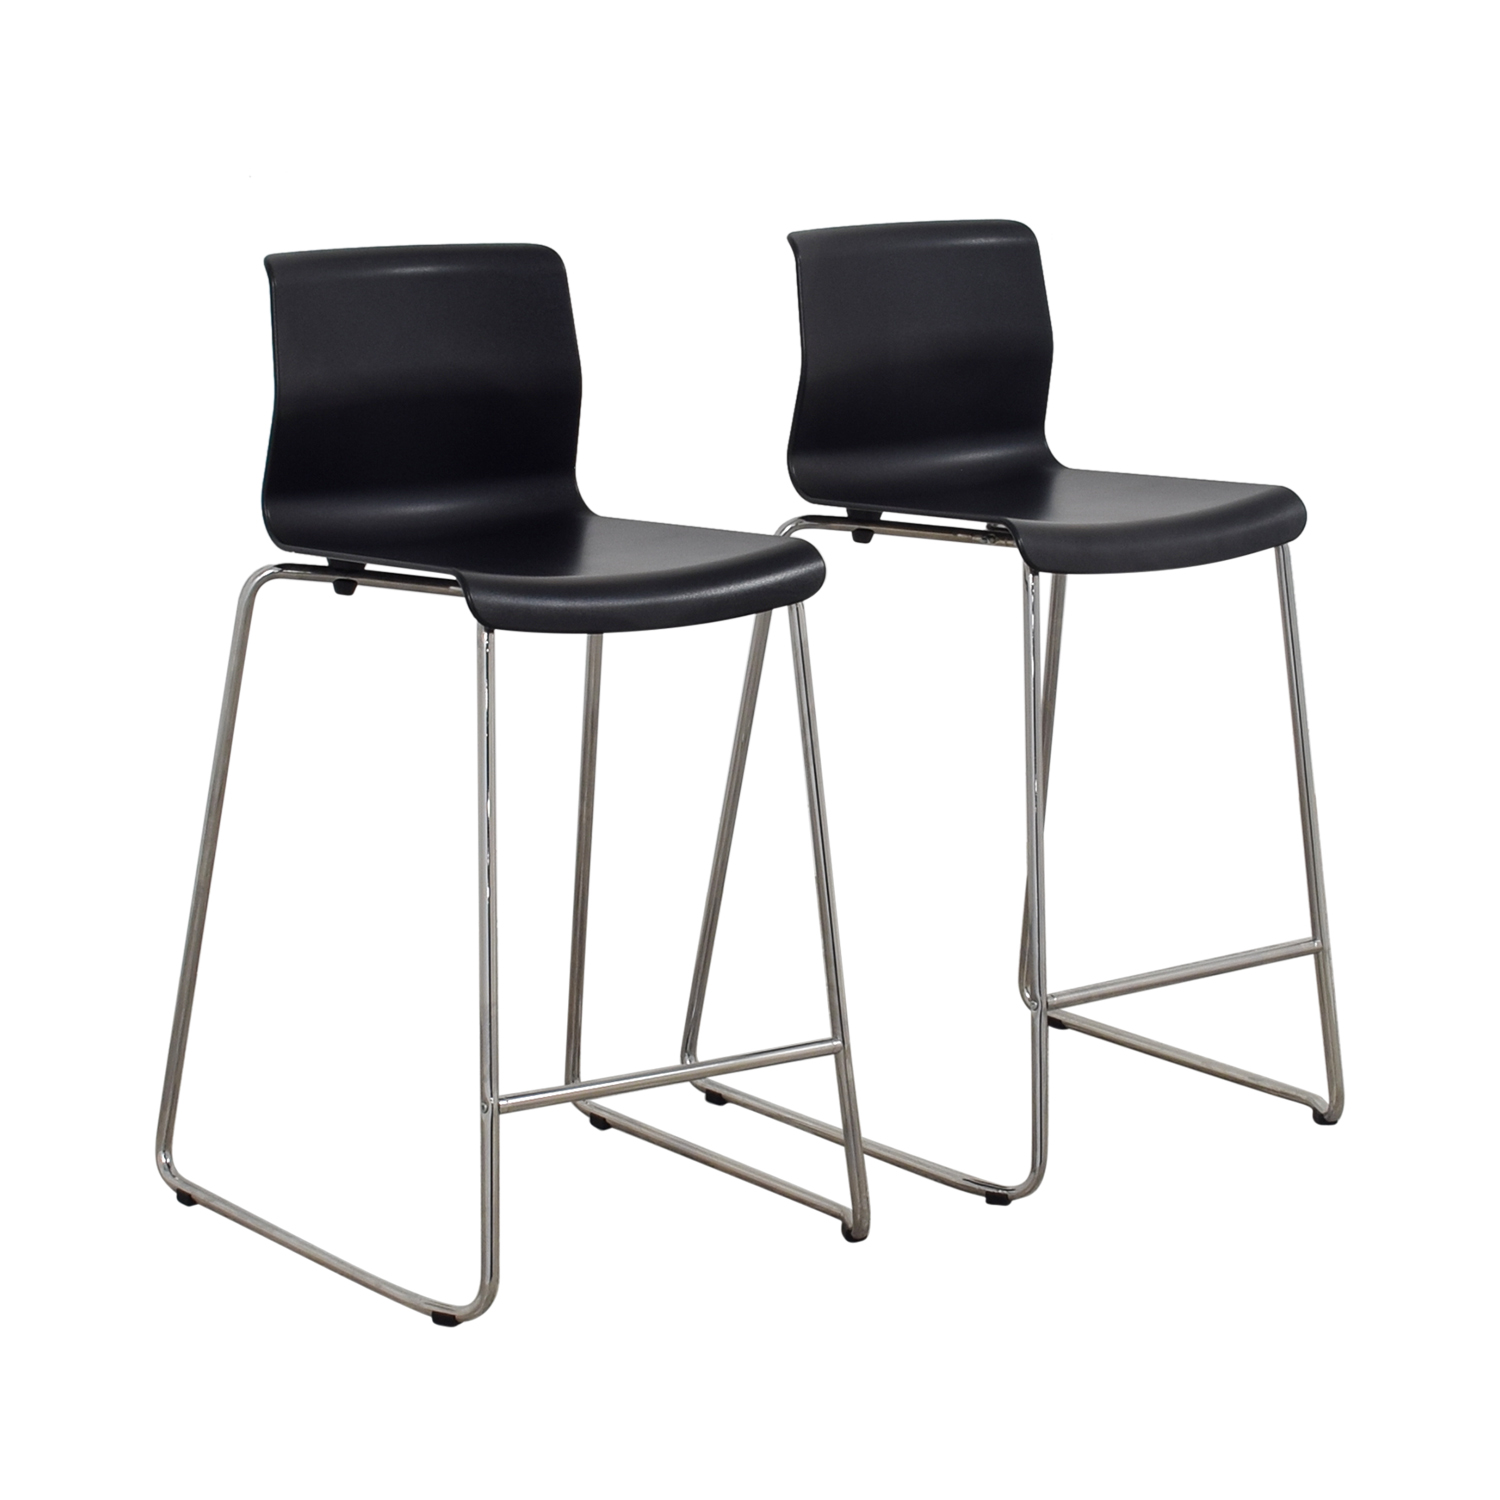 75 off ikea ikea black and metal bar stools chairs for Bar stools ikea